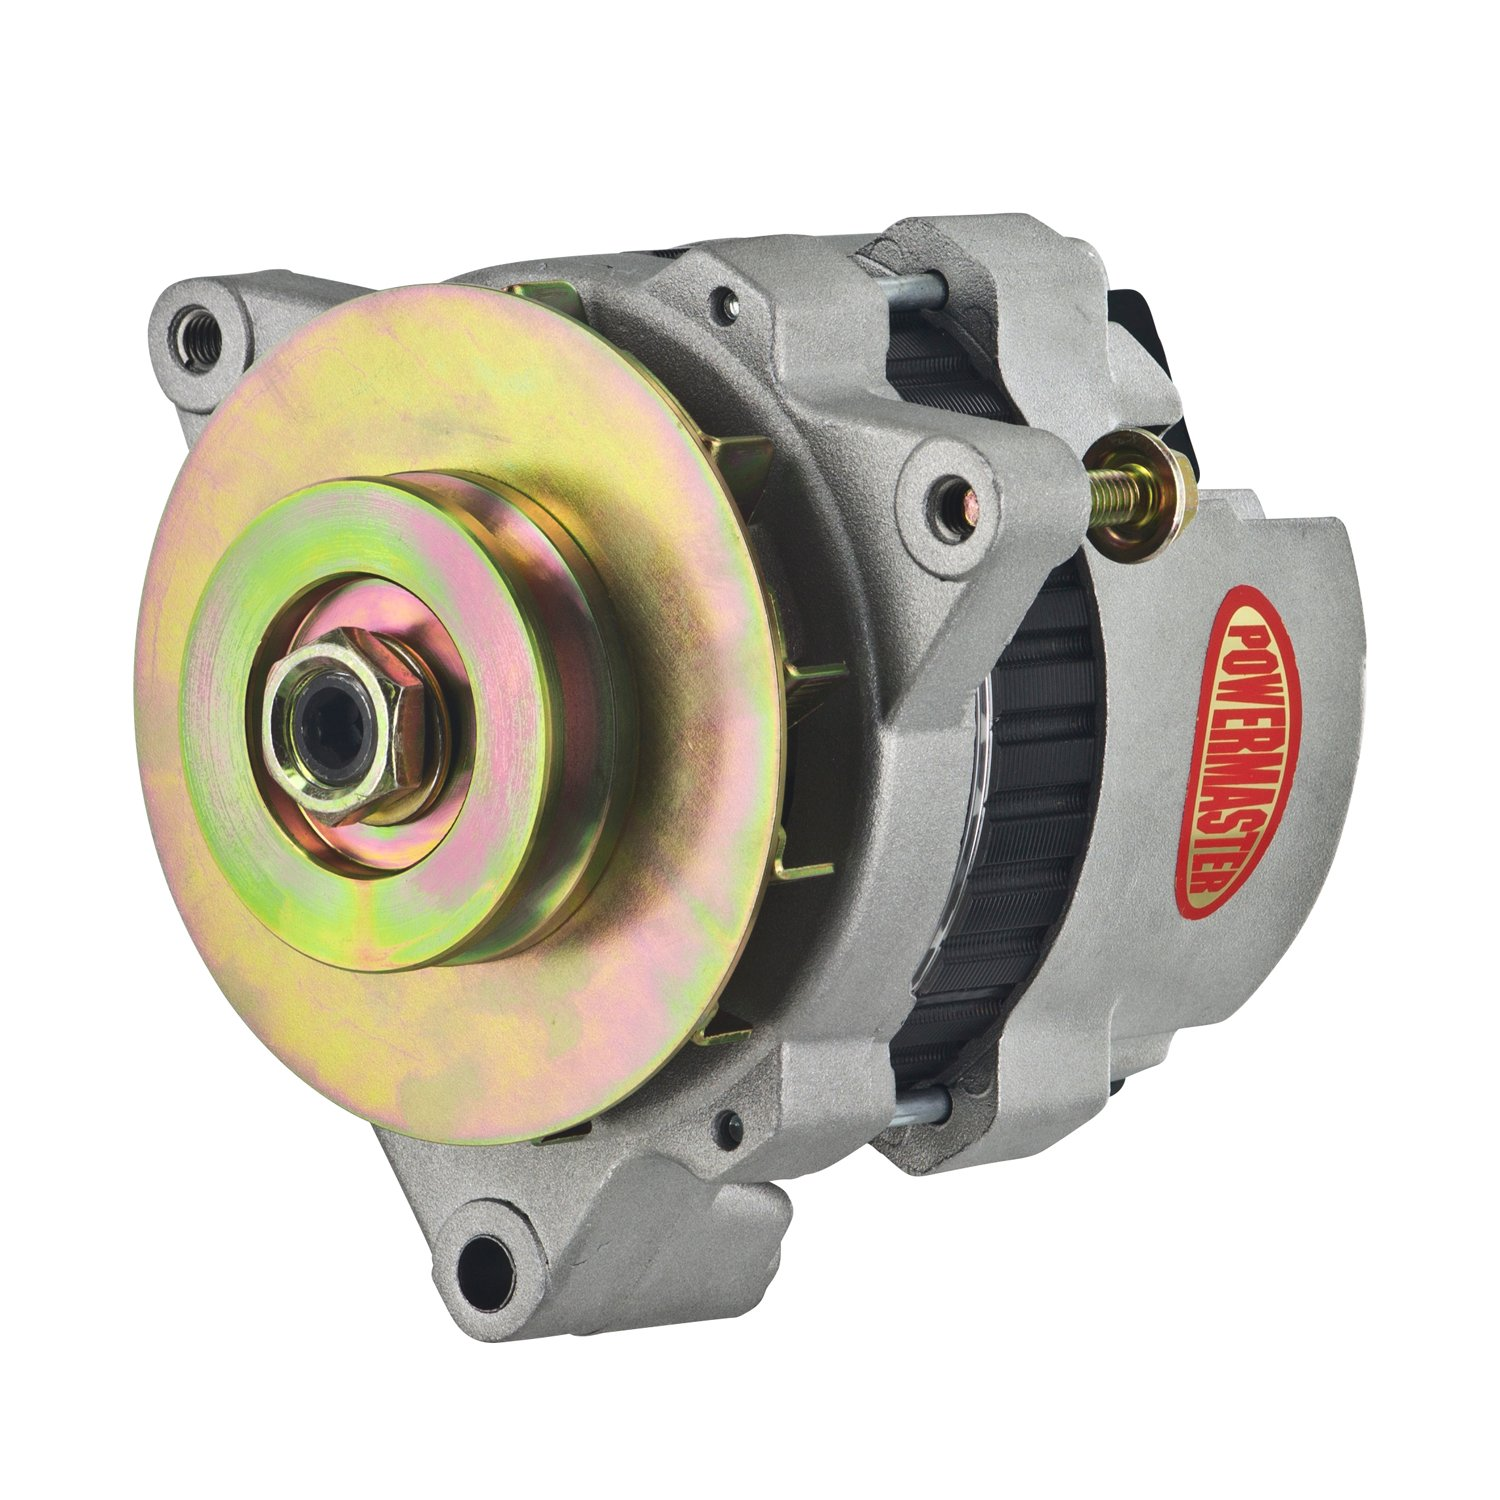 Powermaster 7476 - GM 5x5 Compact Race Alternators